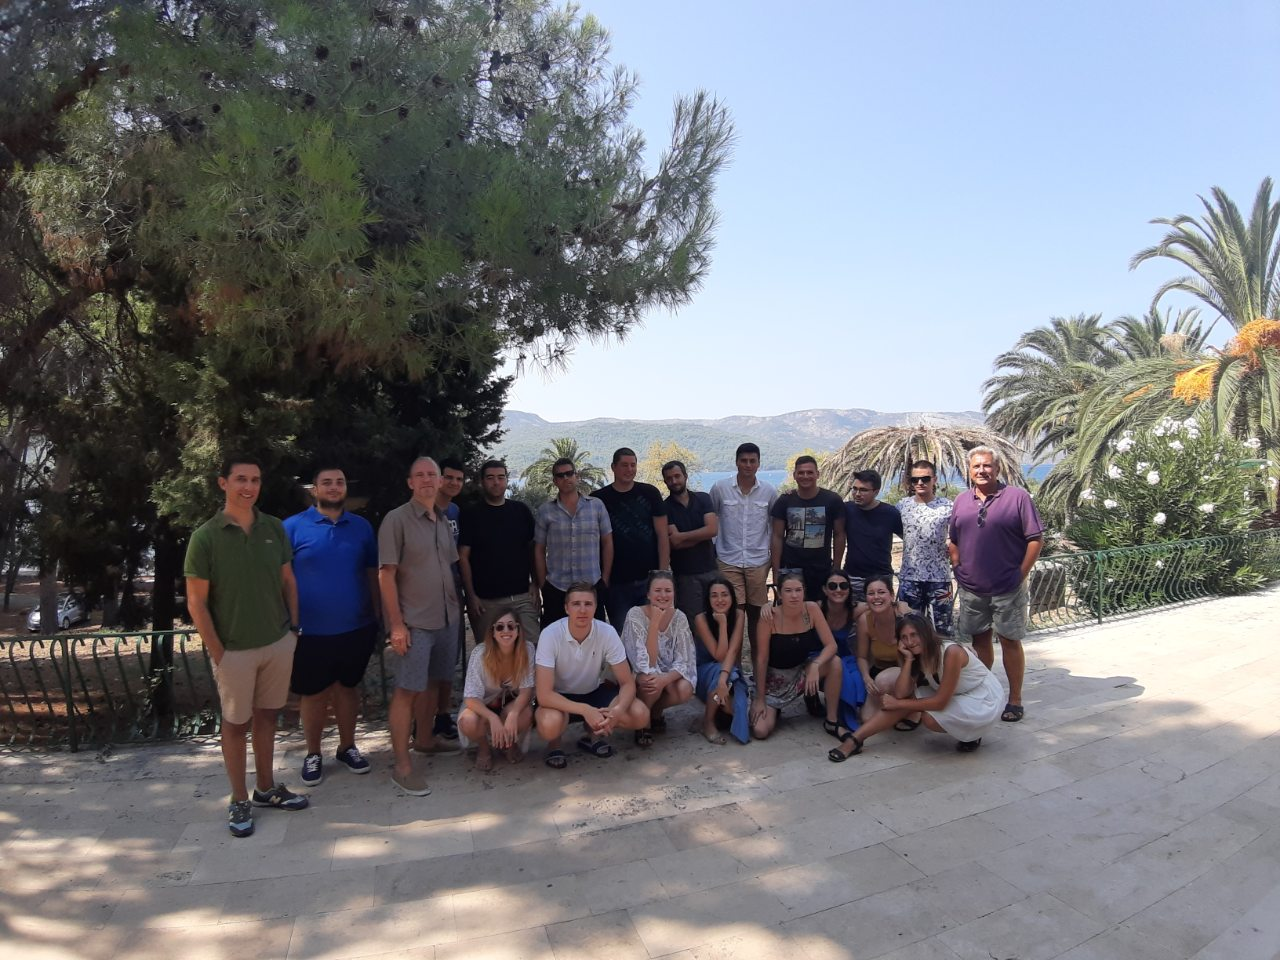 Dr. Rok Zupančič invited speaker at the International Summer School in Hvar, Croatia